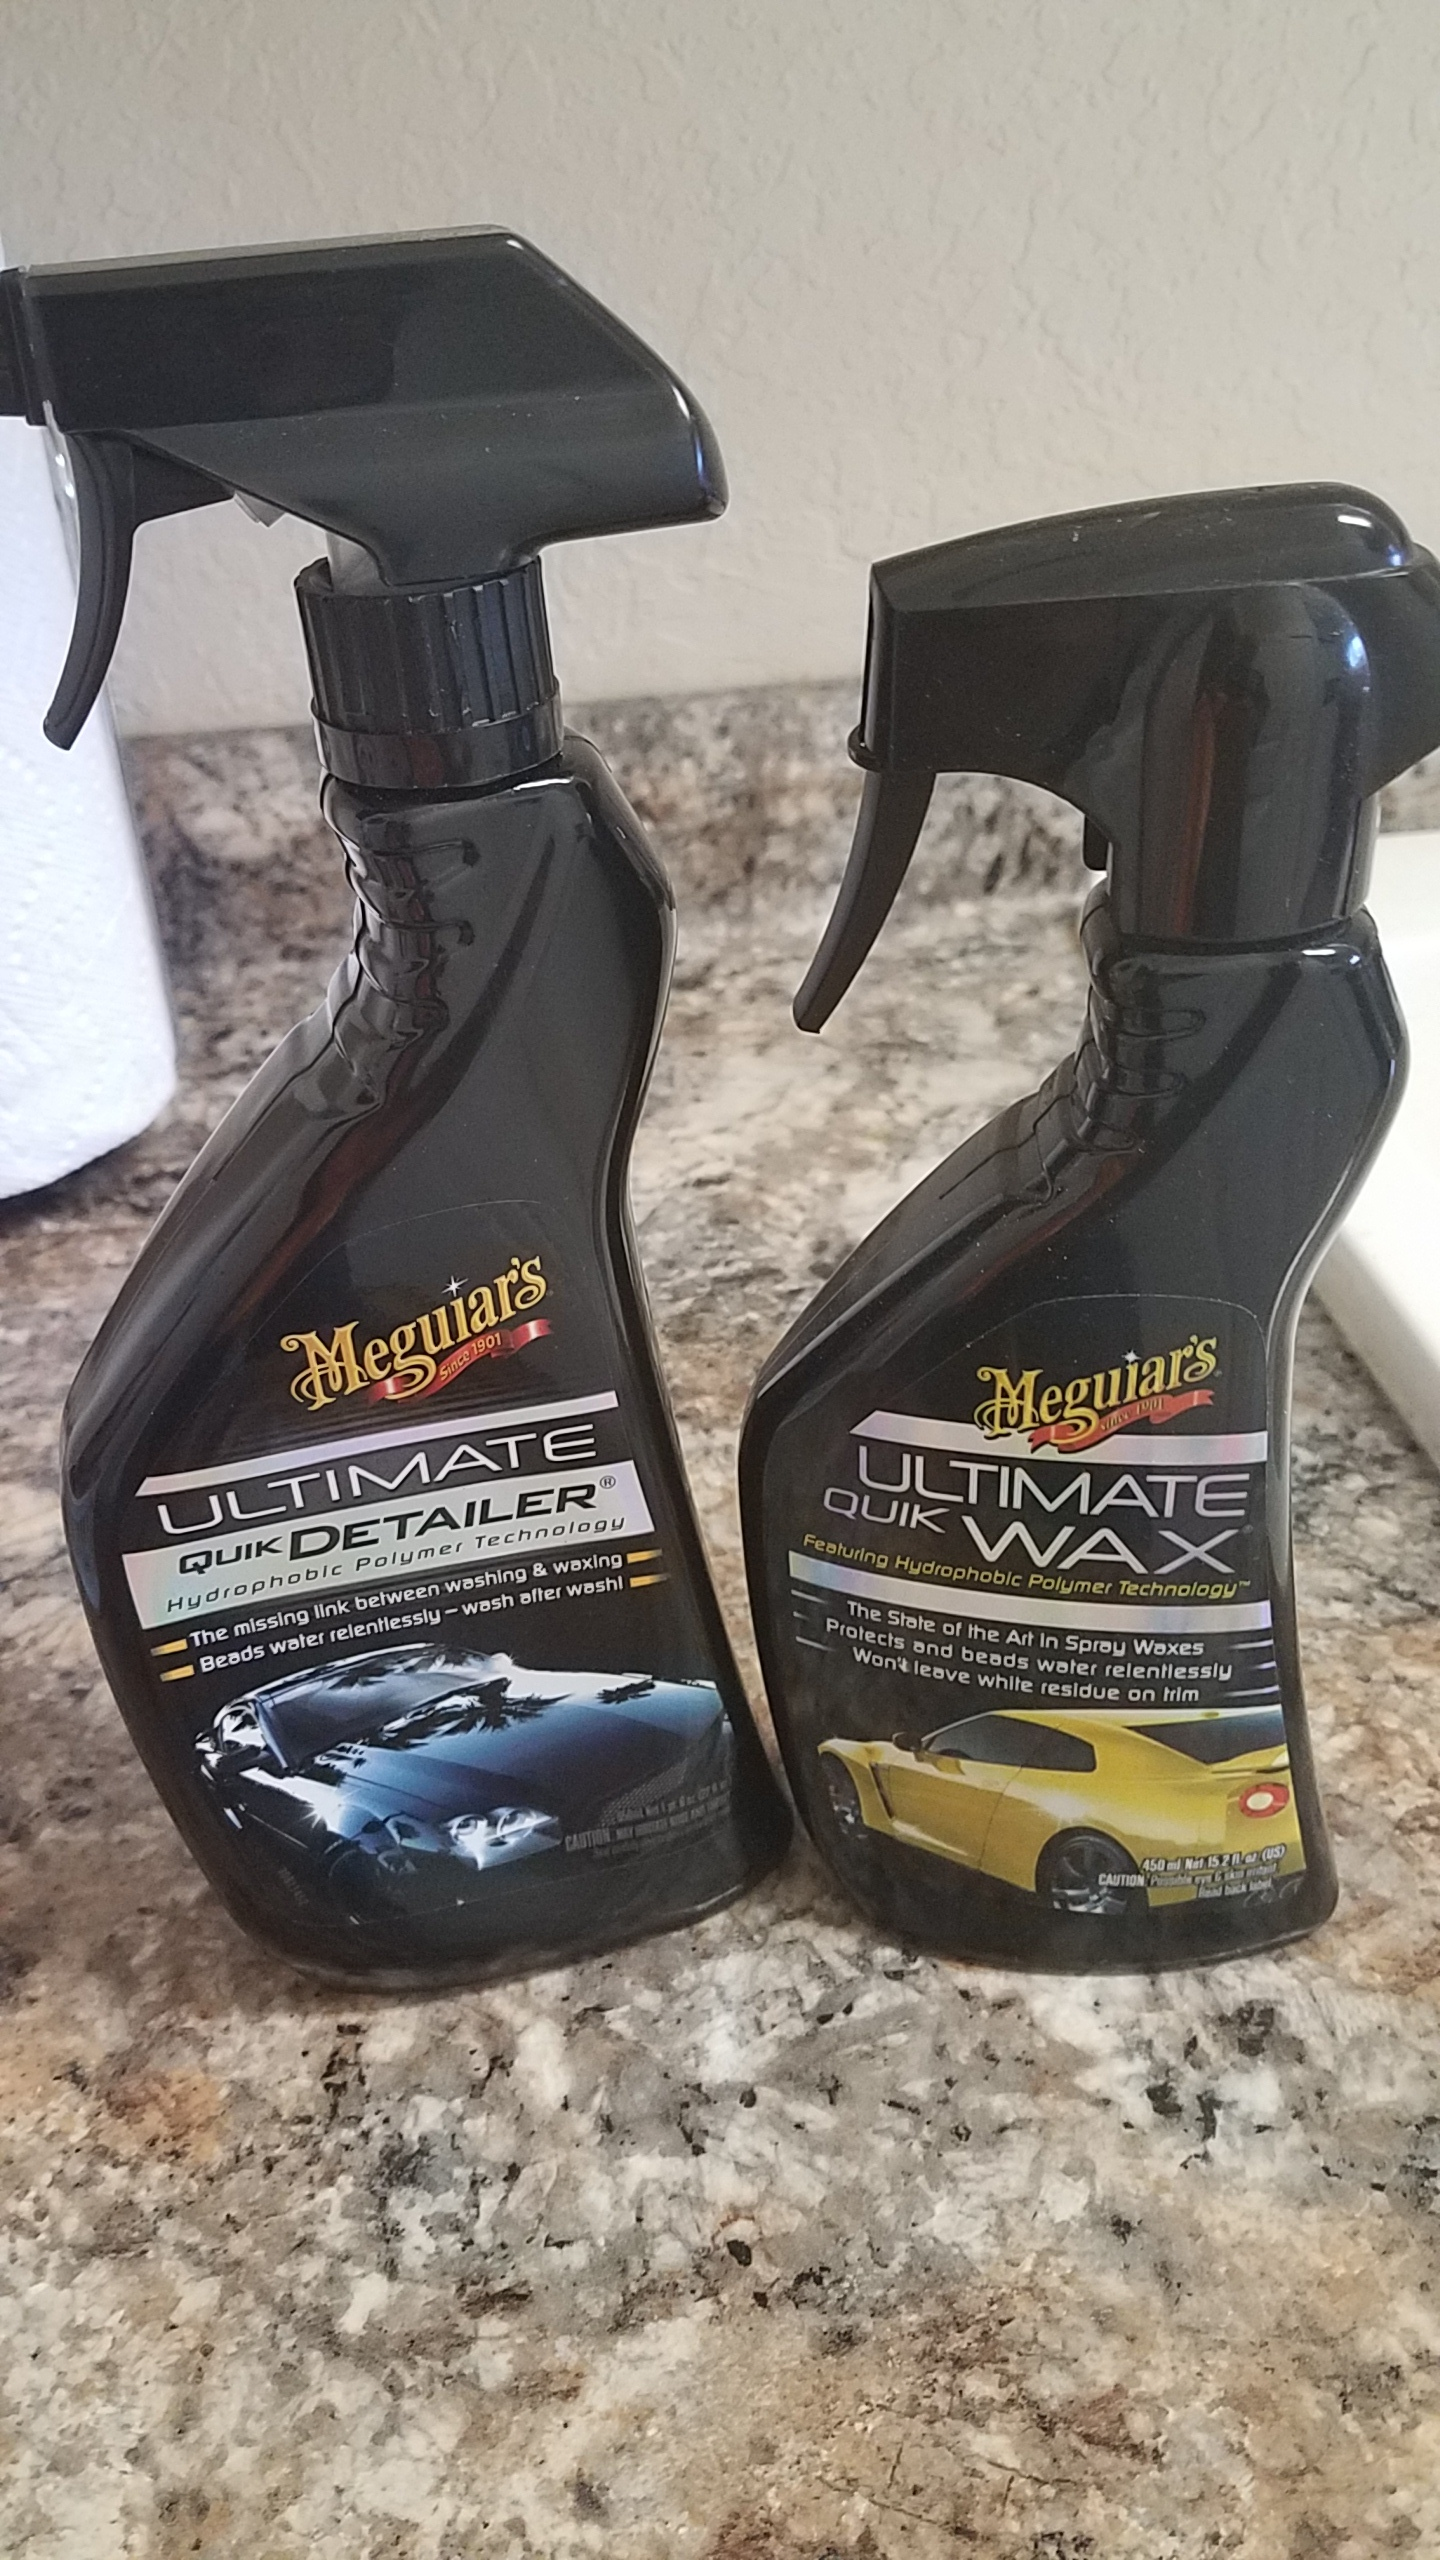 Meguiars Ultimate Detailer (Left)